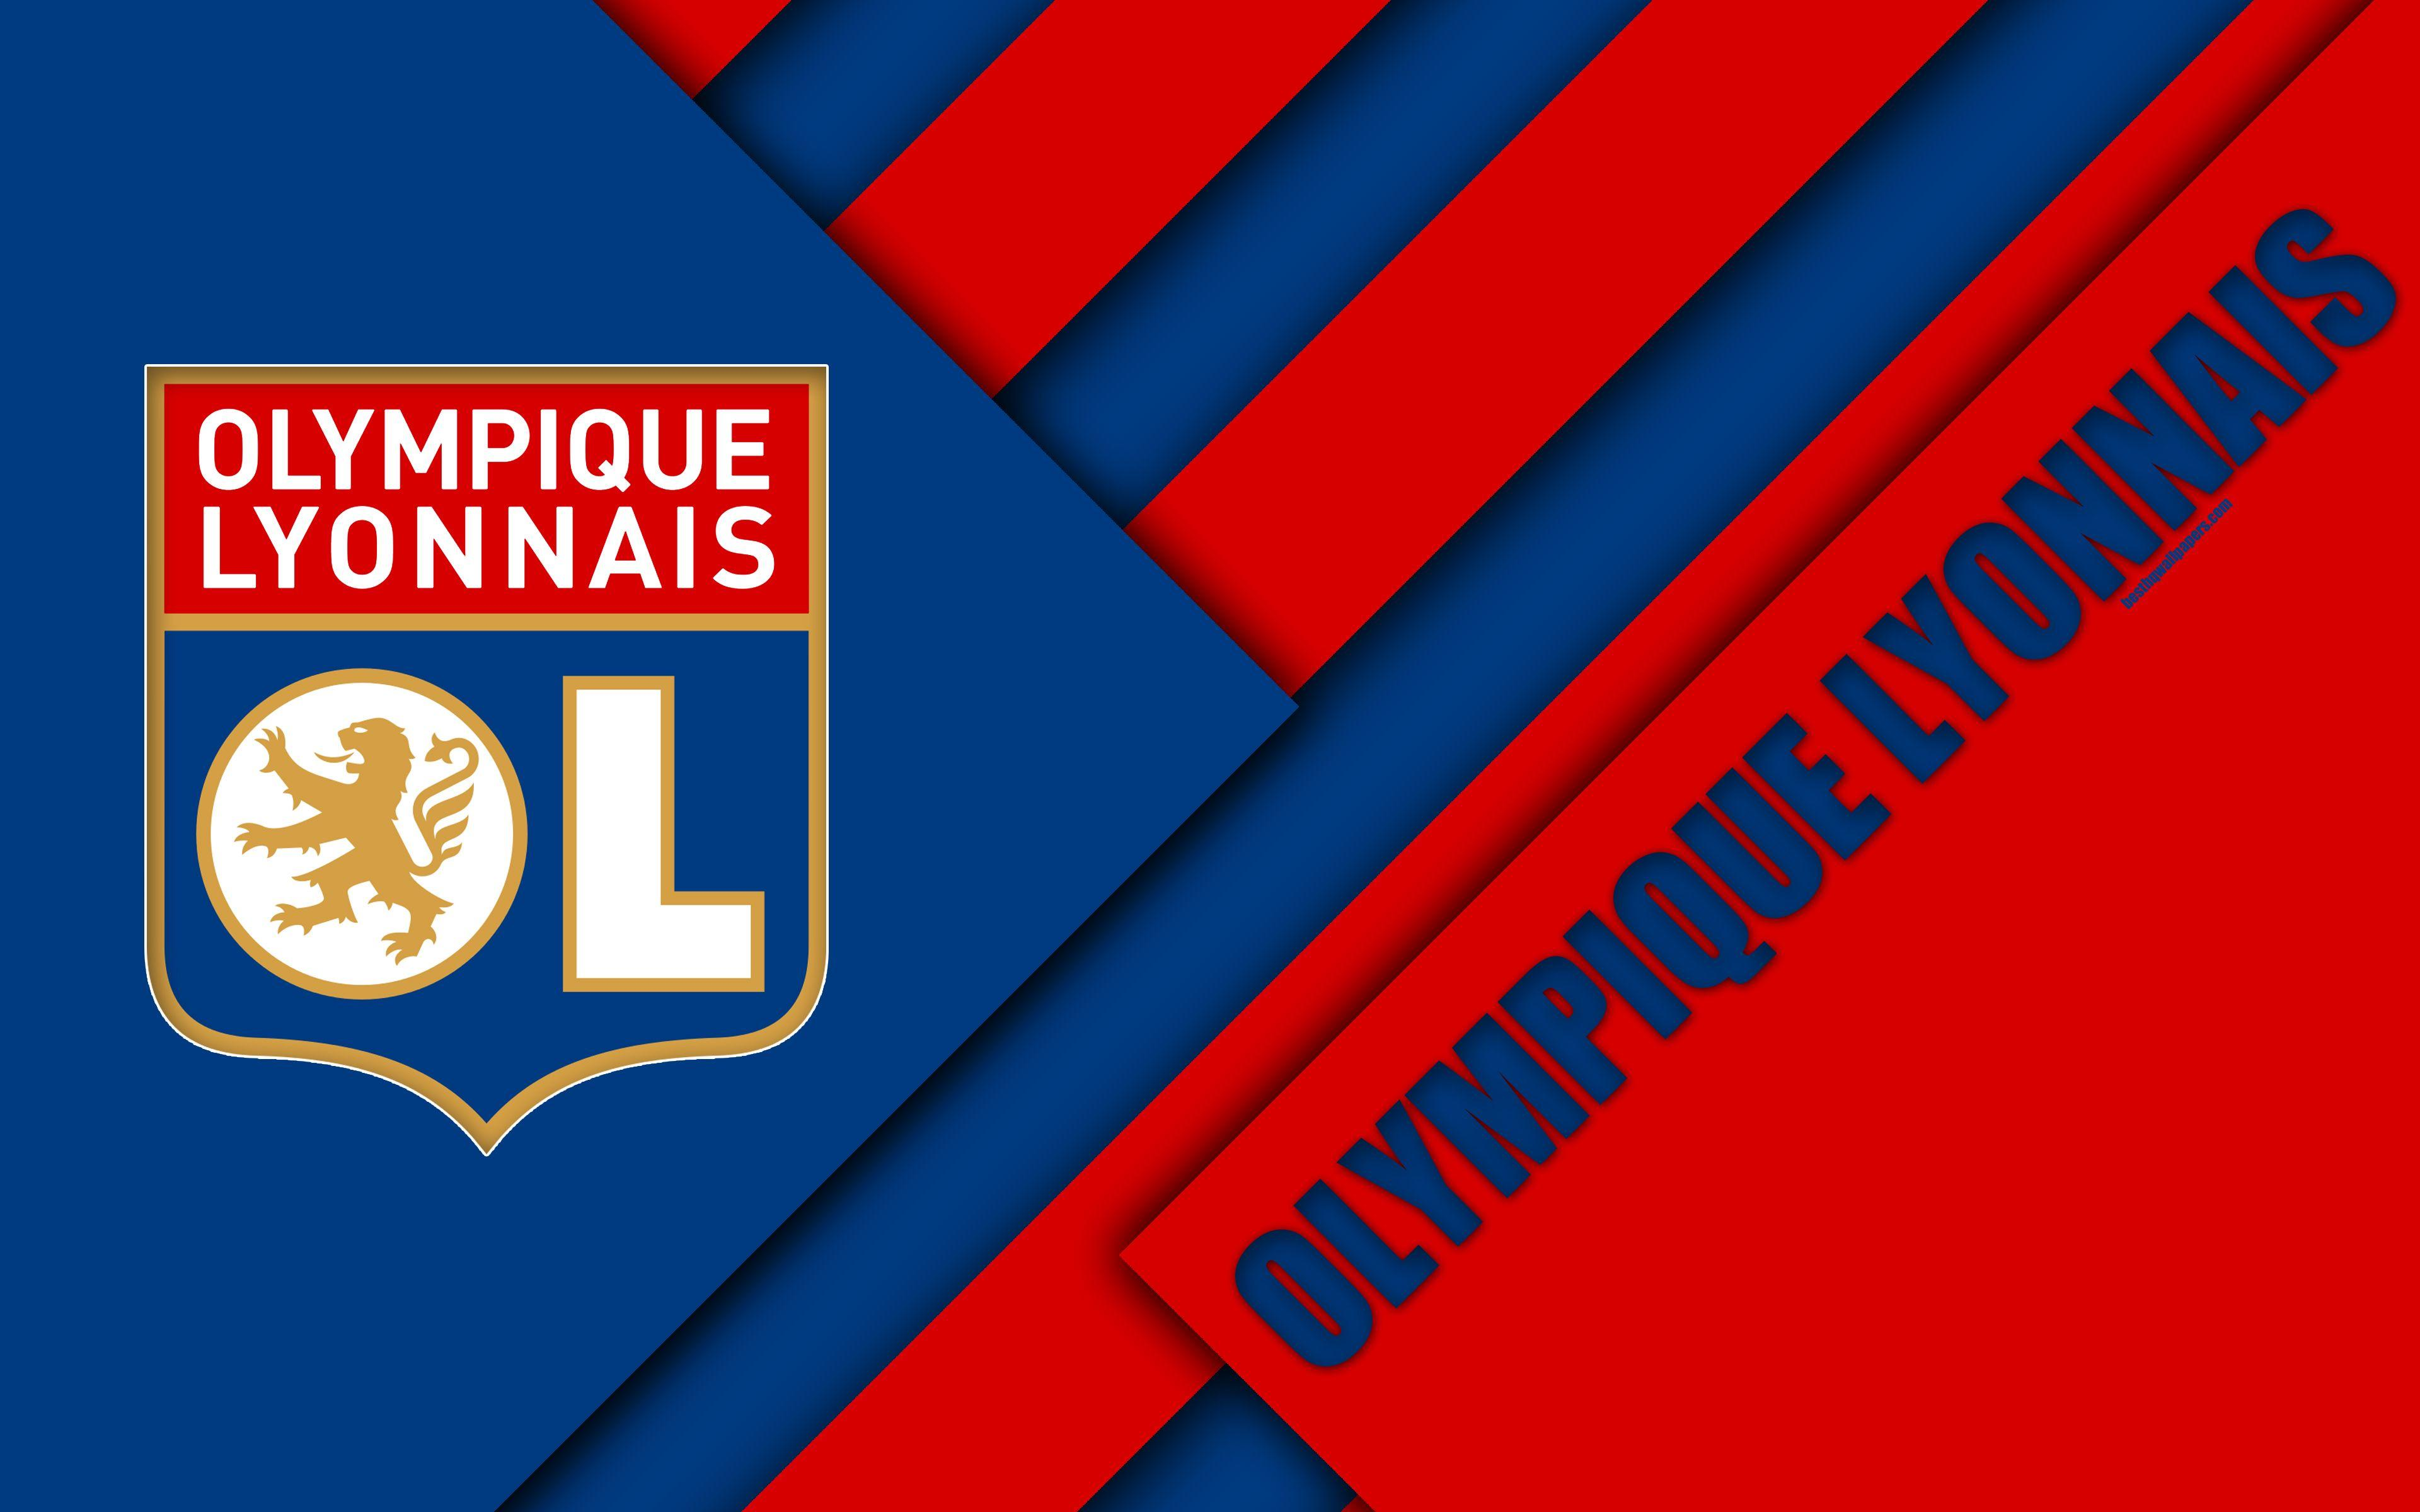 Download wallpapers Olympique Lyonnais, French football club, Lyon